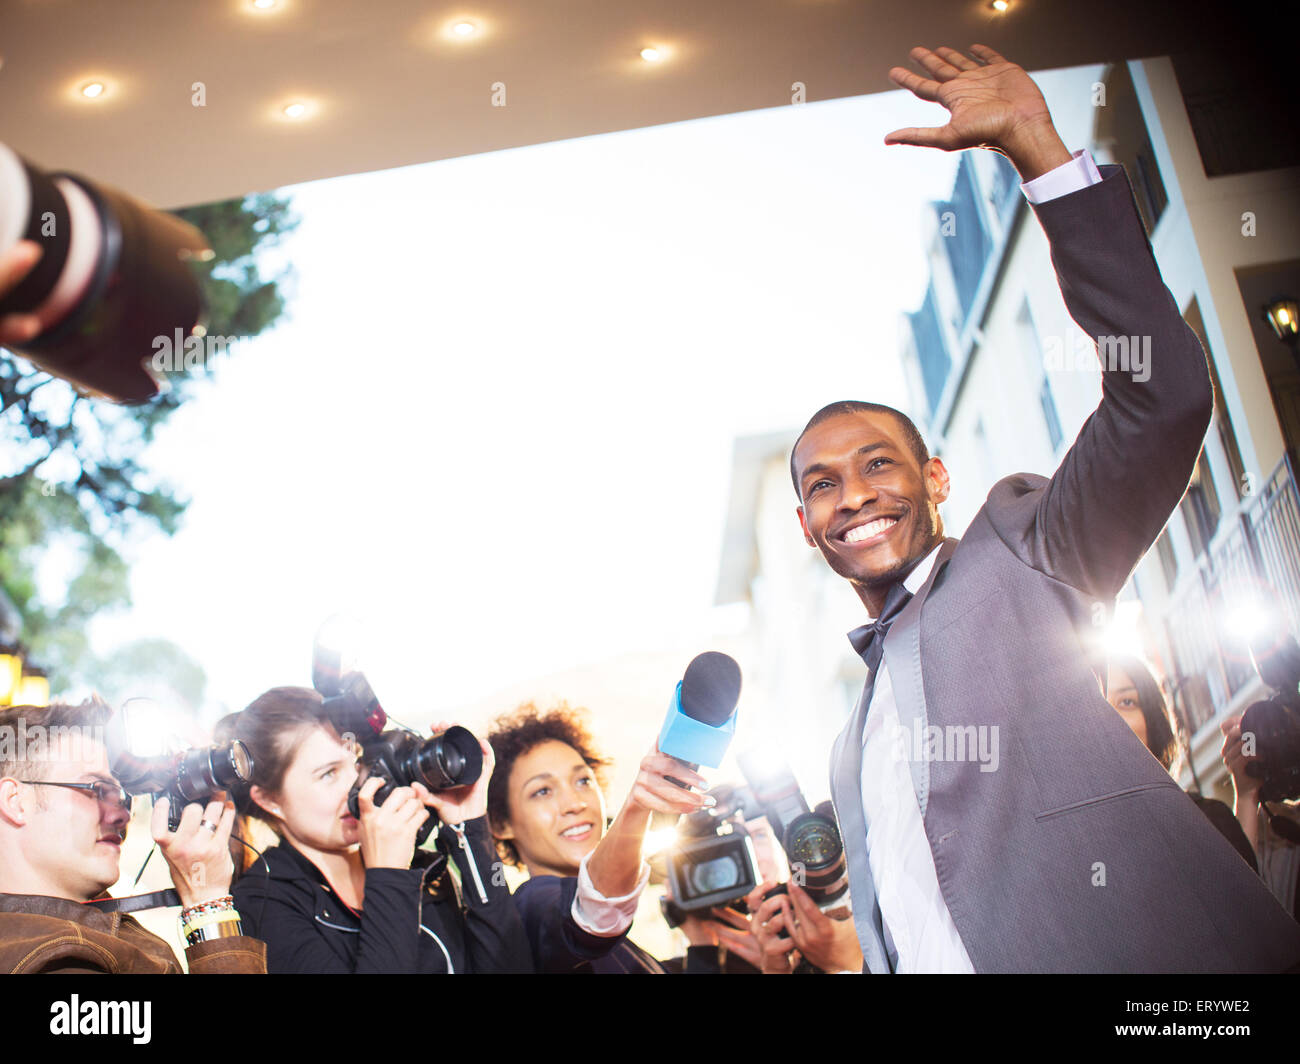 Waving celebrity being interviewed and photographed by paparazzi at event - Stock Image